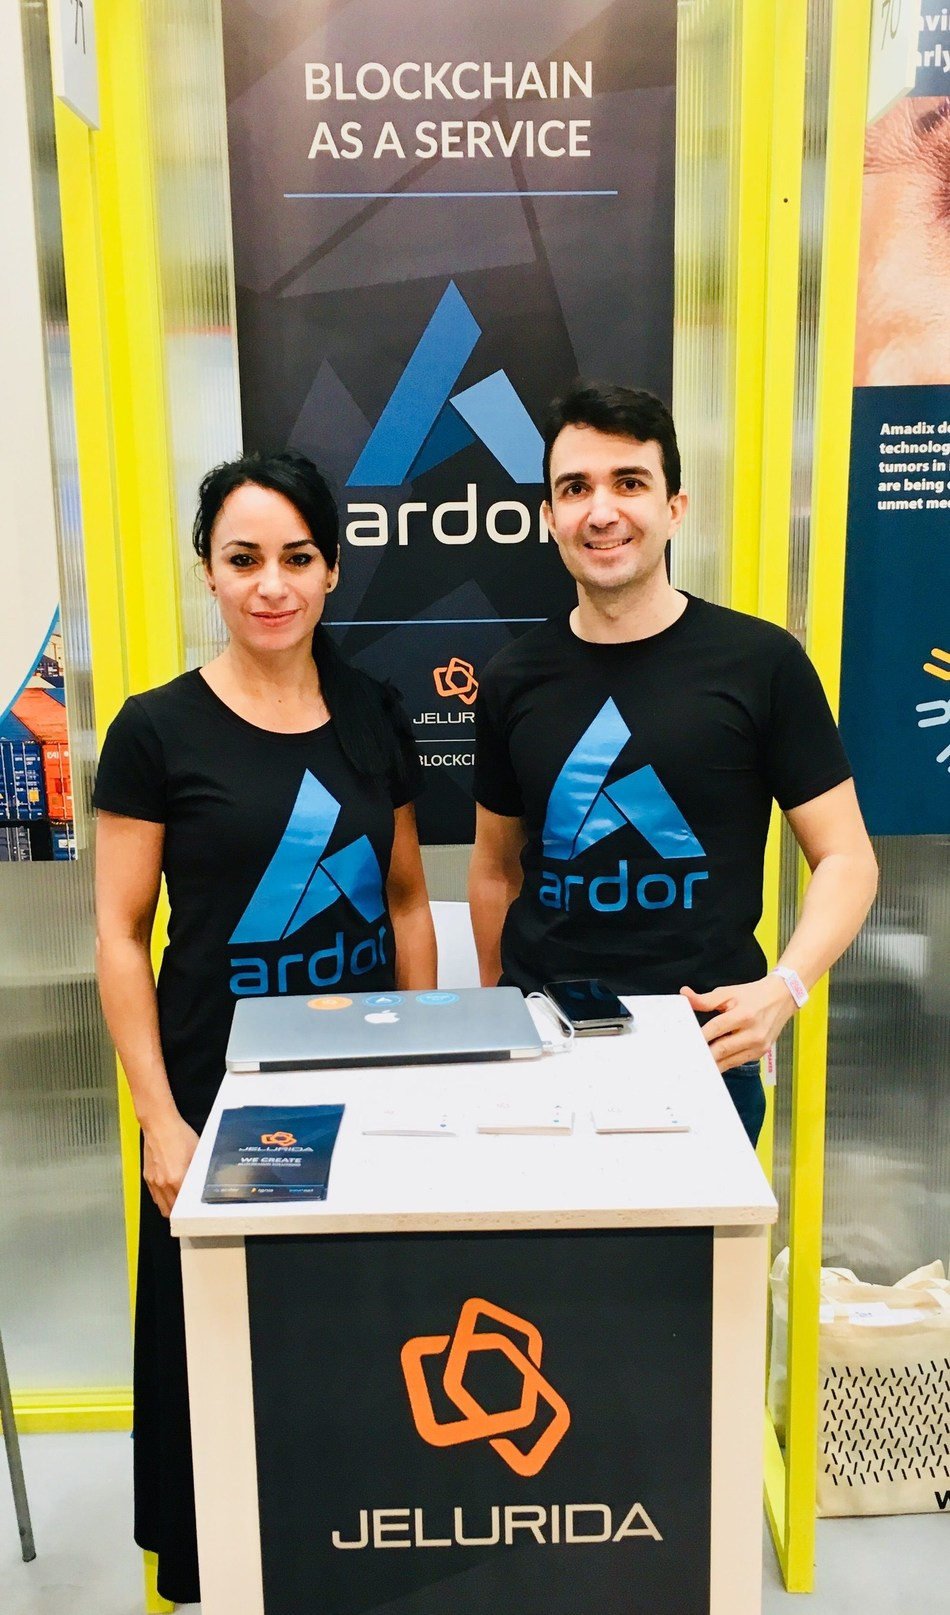 Jelurida Team Presenting the Ardor Blockchain Platform (PRNewsfoto/Jelurida)